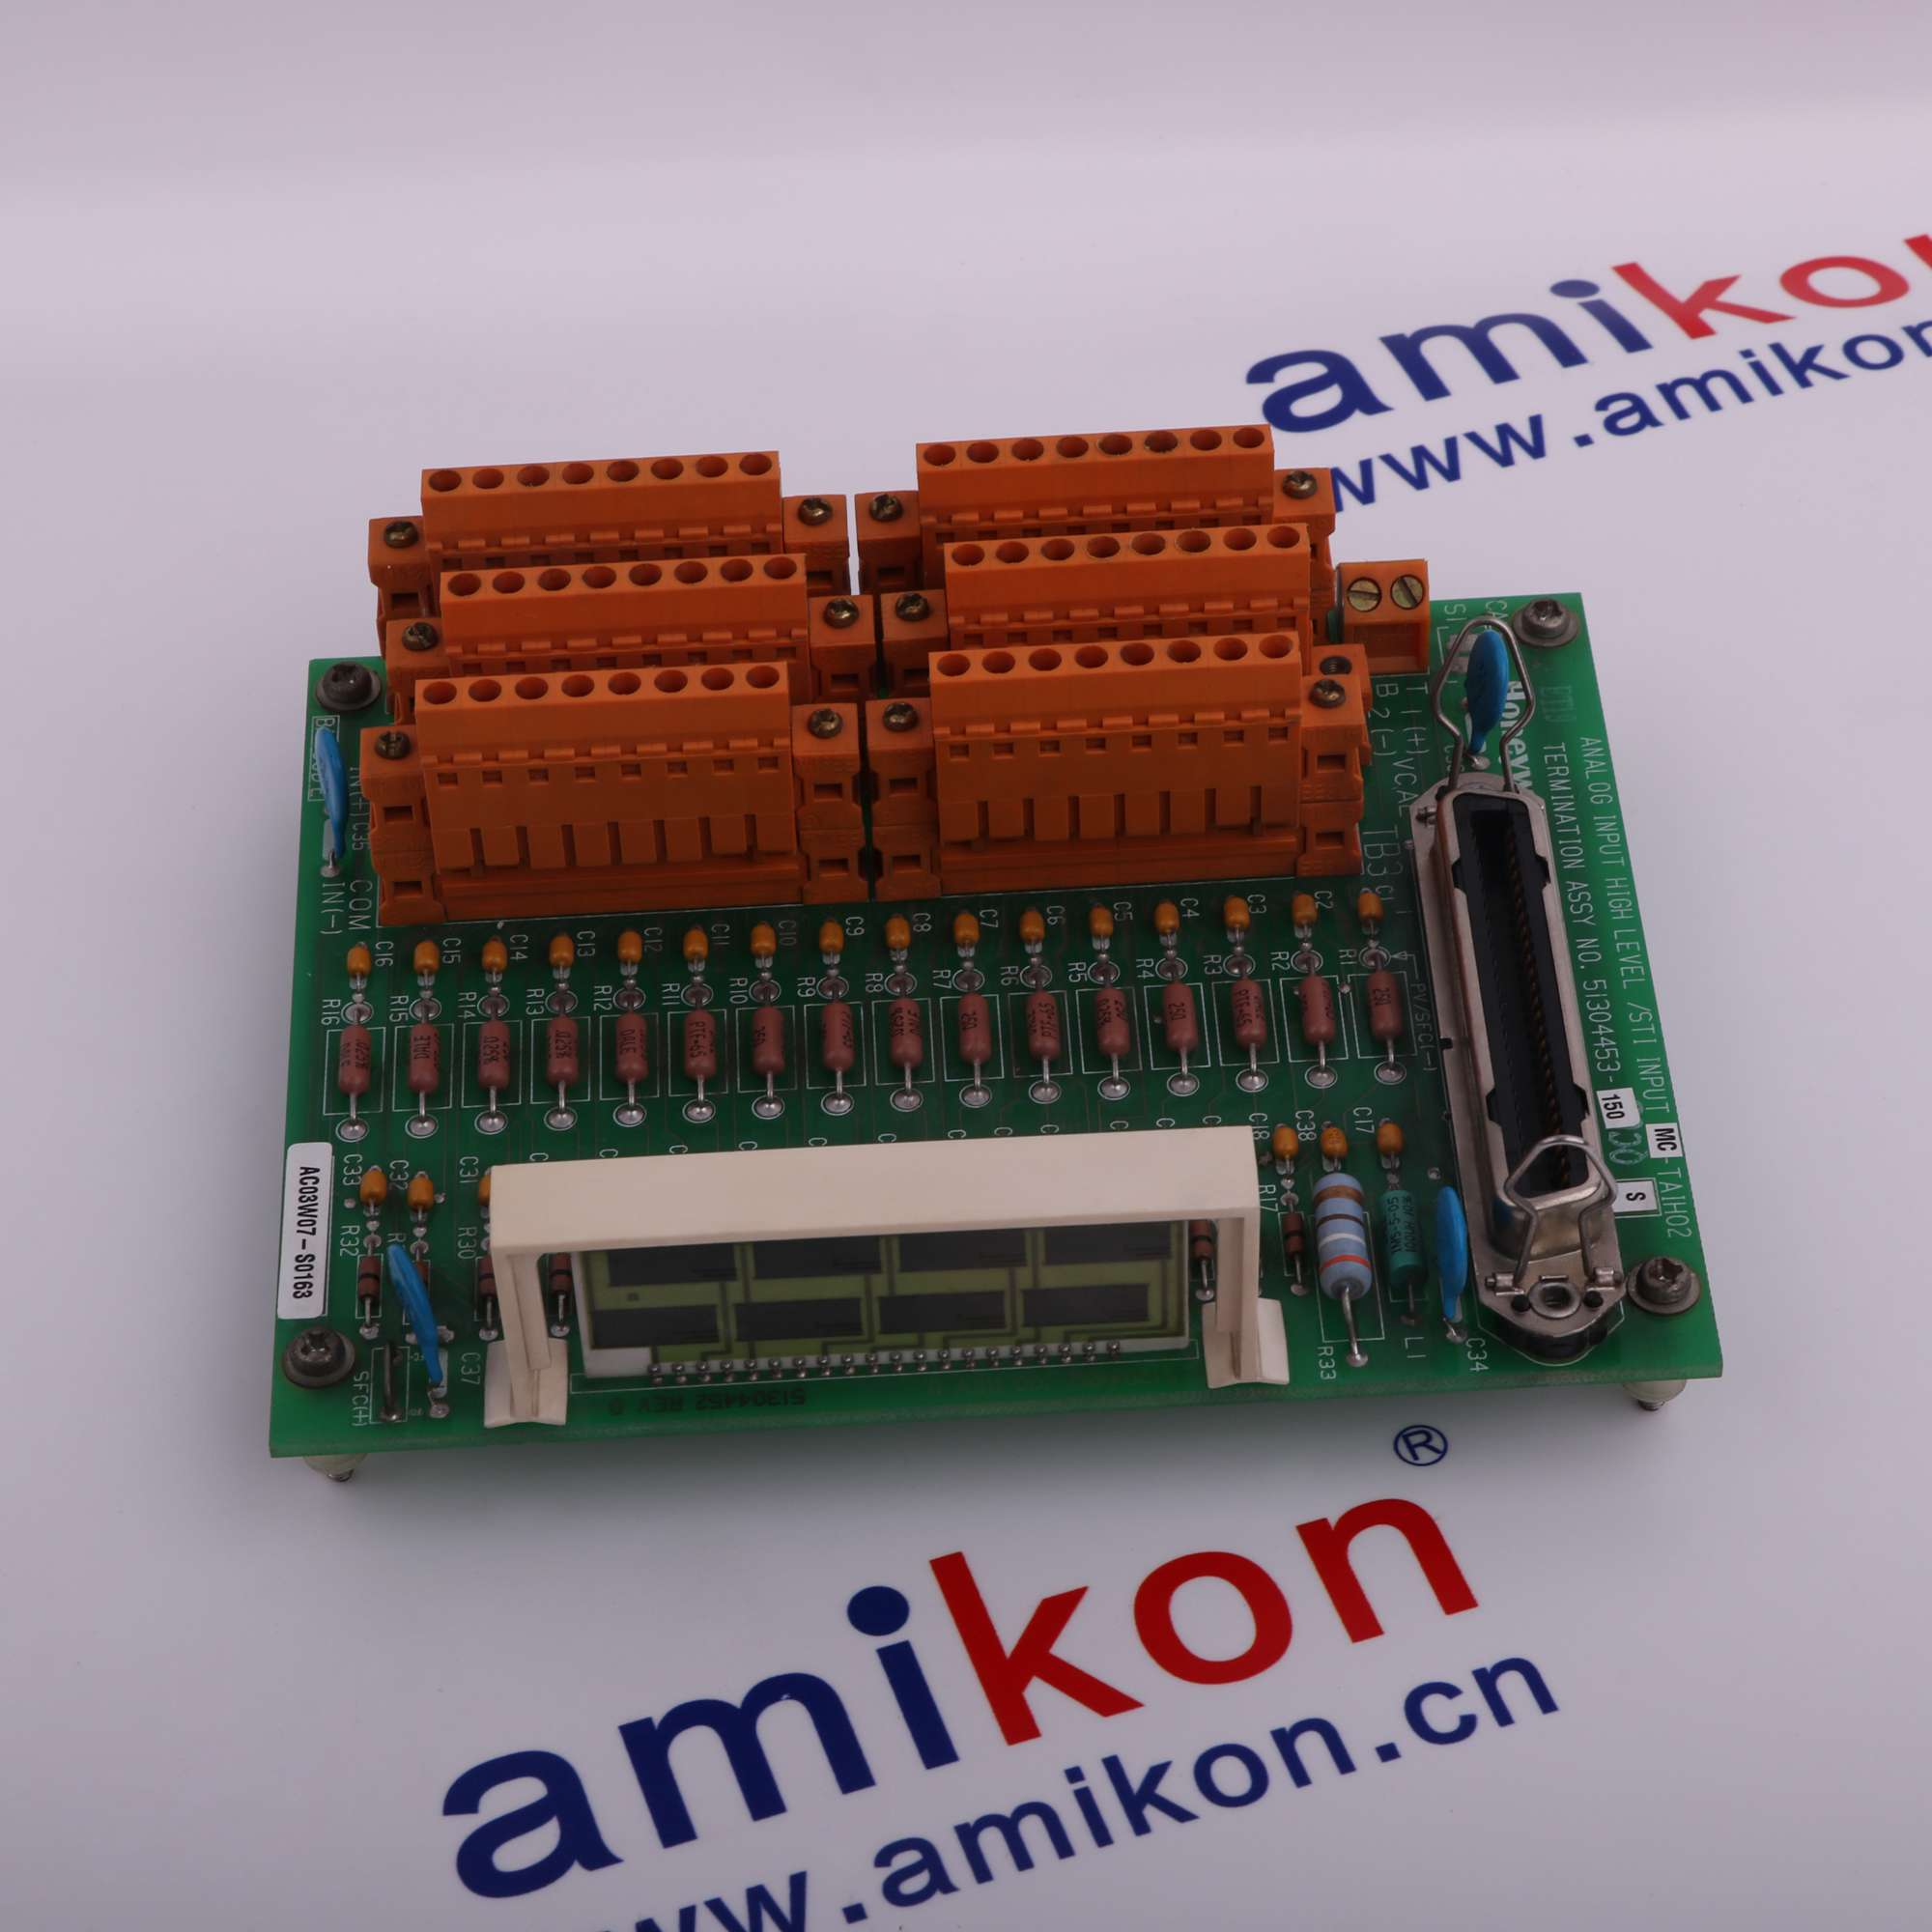 Honeywell Pxpr211 Power Regulator Pcb Circuit Board Photos Circuits Computers Components Technology Image